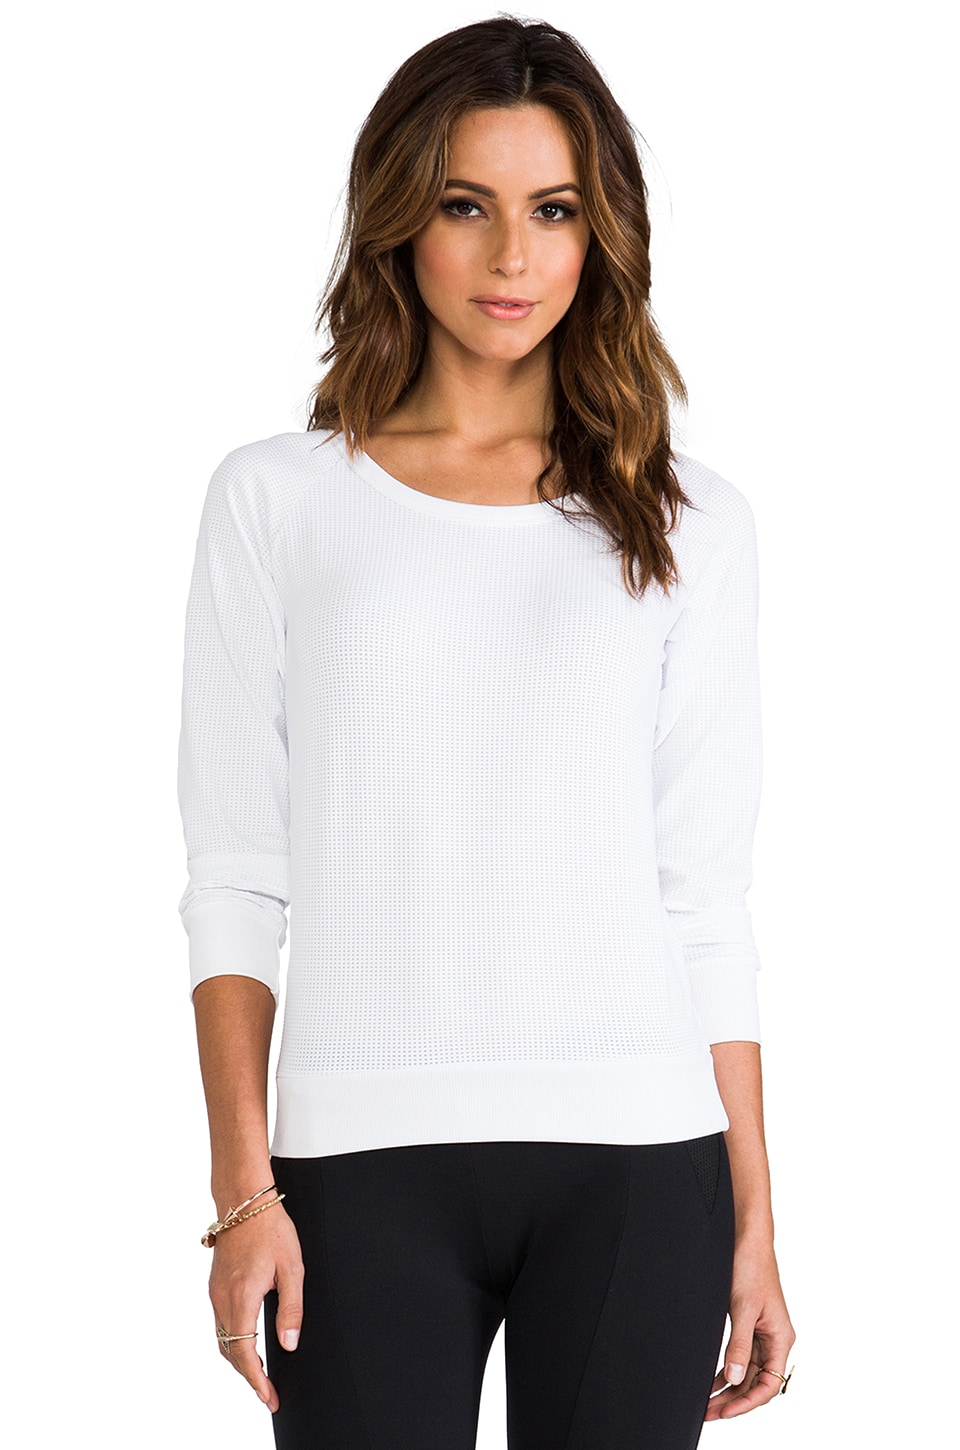 SOLOW Eclon Mesh Running Top in White